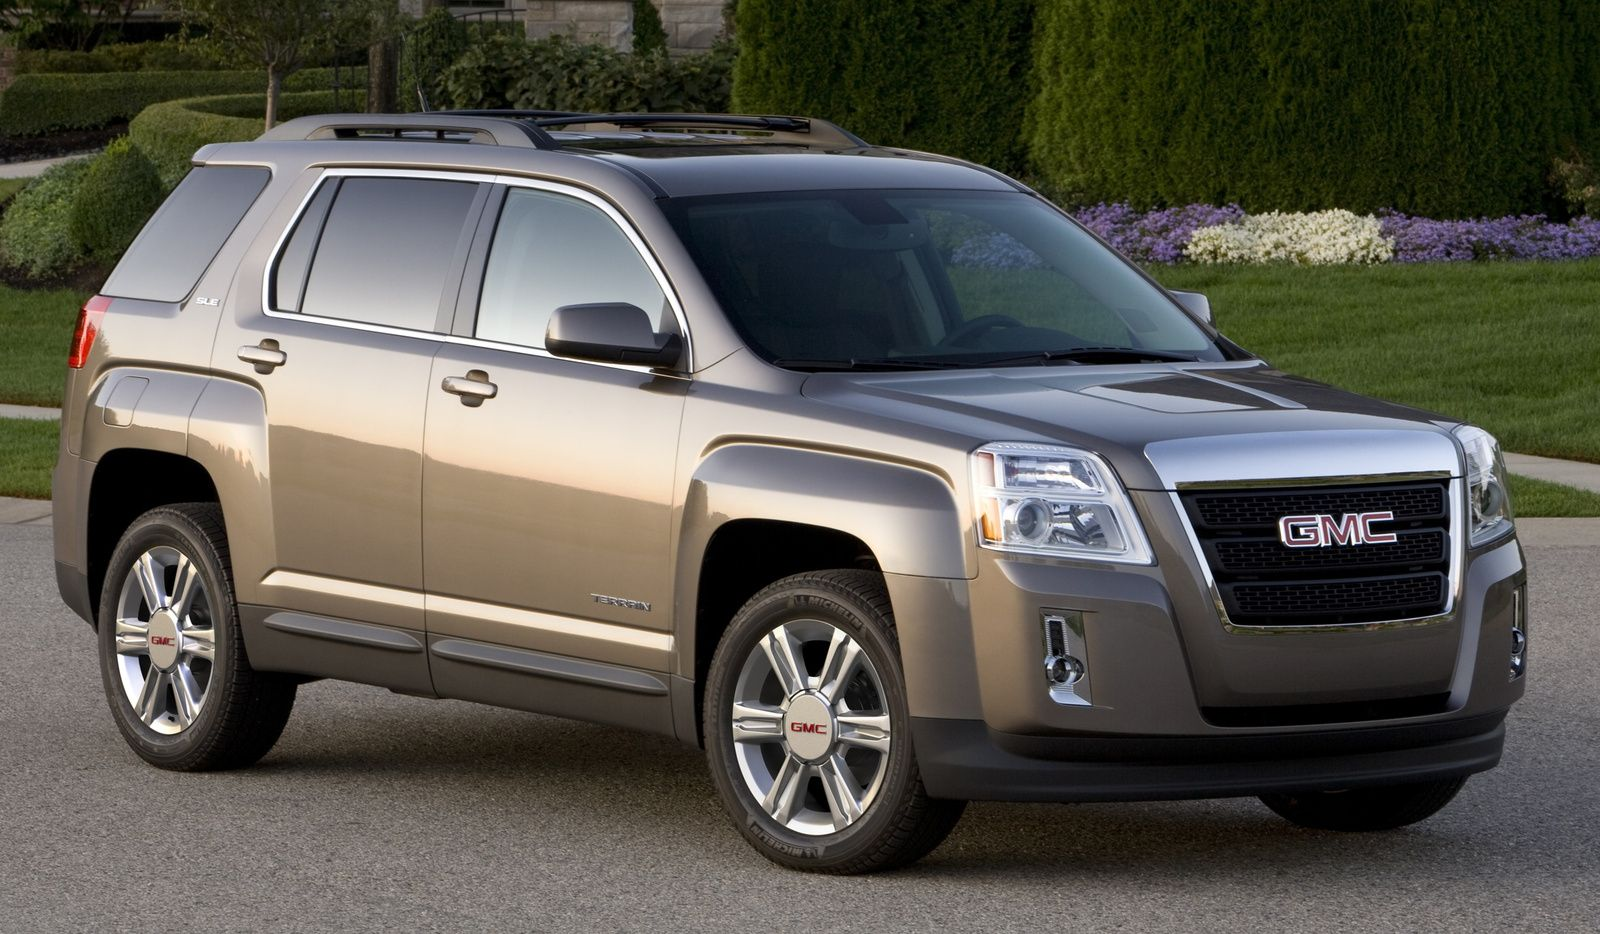 The 2015 Gmc Terrain Awd Sle Is A New Crossover Utility Vehicle Cuv You Can Afford For Around The Price Of Pi 31 415 Piday Gmc Terrain Gmc Terrian Gmc